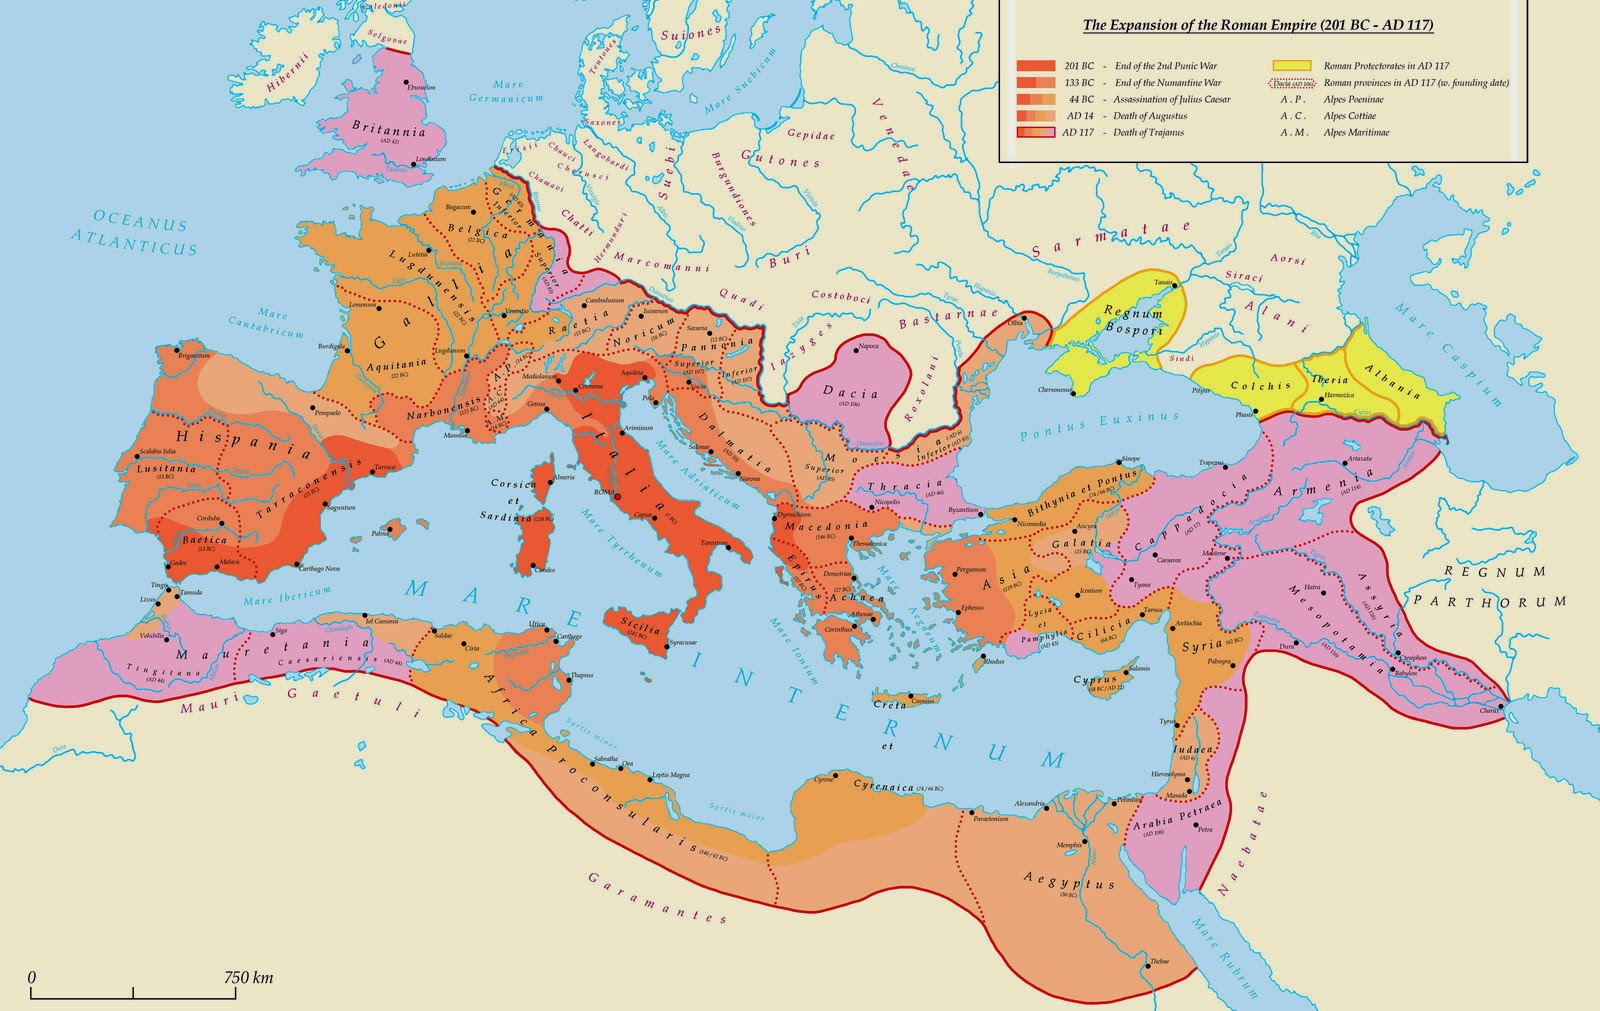 roman republic and rome The political decay of the roman republic - the political decay of the roman republic the fall of the western roman empire was the first example in history on the collapse of a constitutional system which was caused by the internal decay in political, military, economics, and sociological issues.